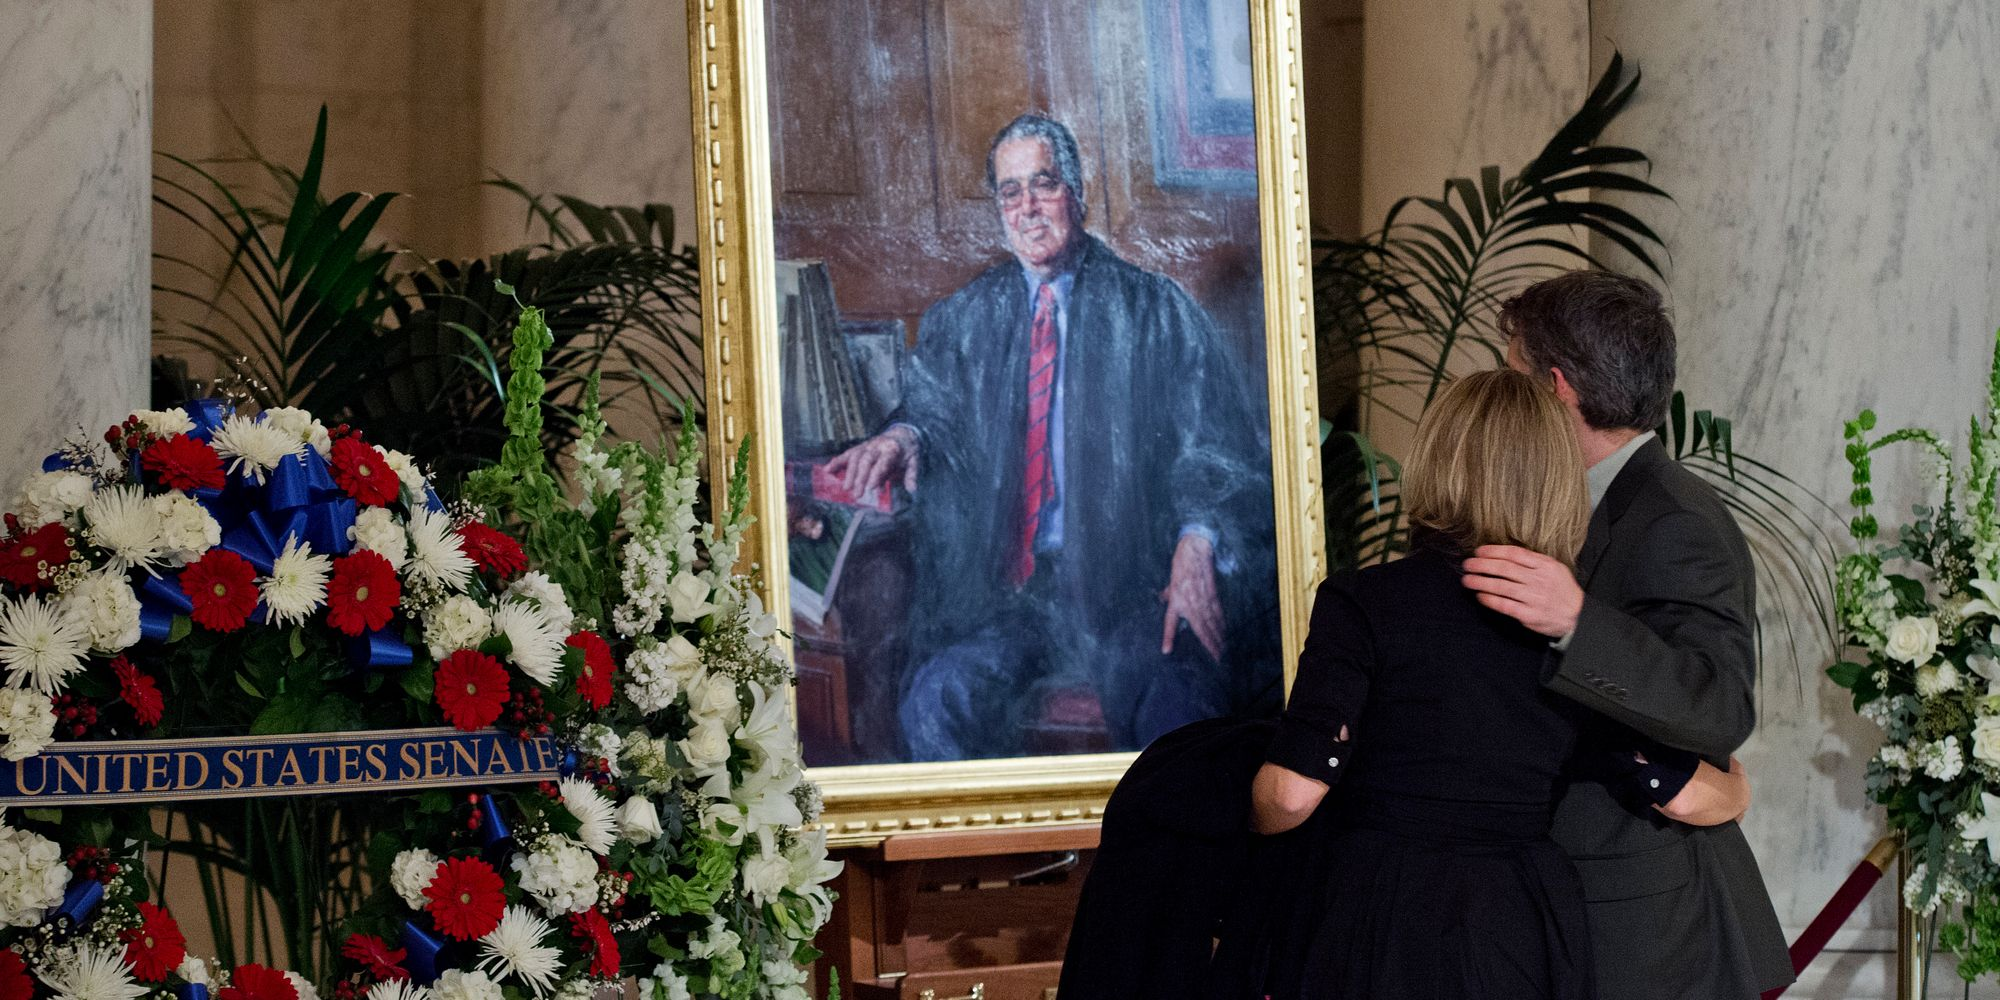 In Lieu Flowers Republicans Could Honor Justice Scalia By Replacing Him